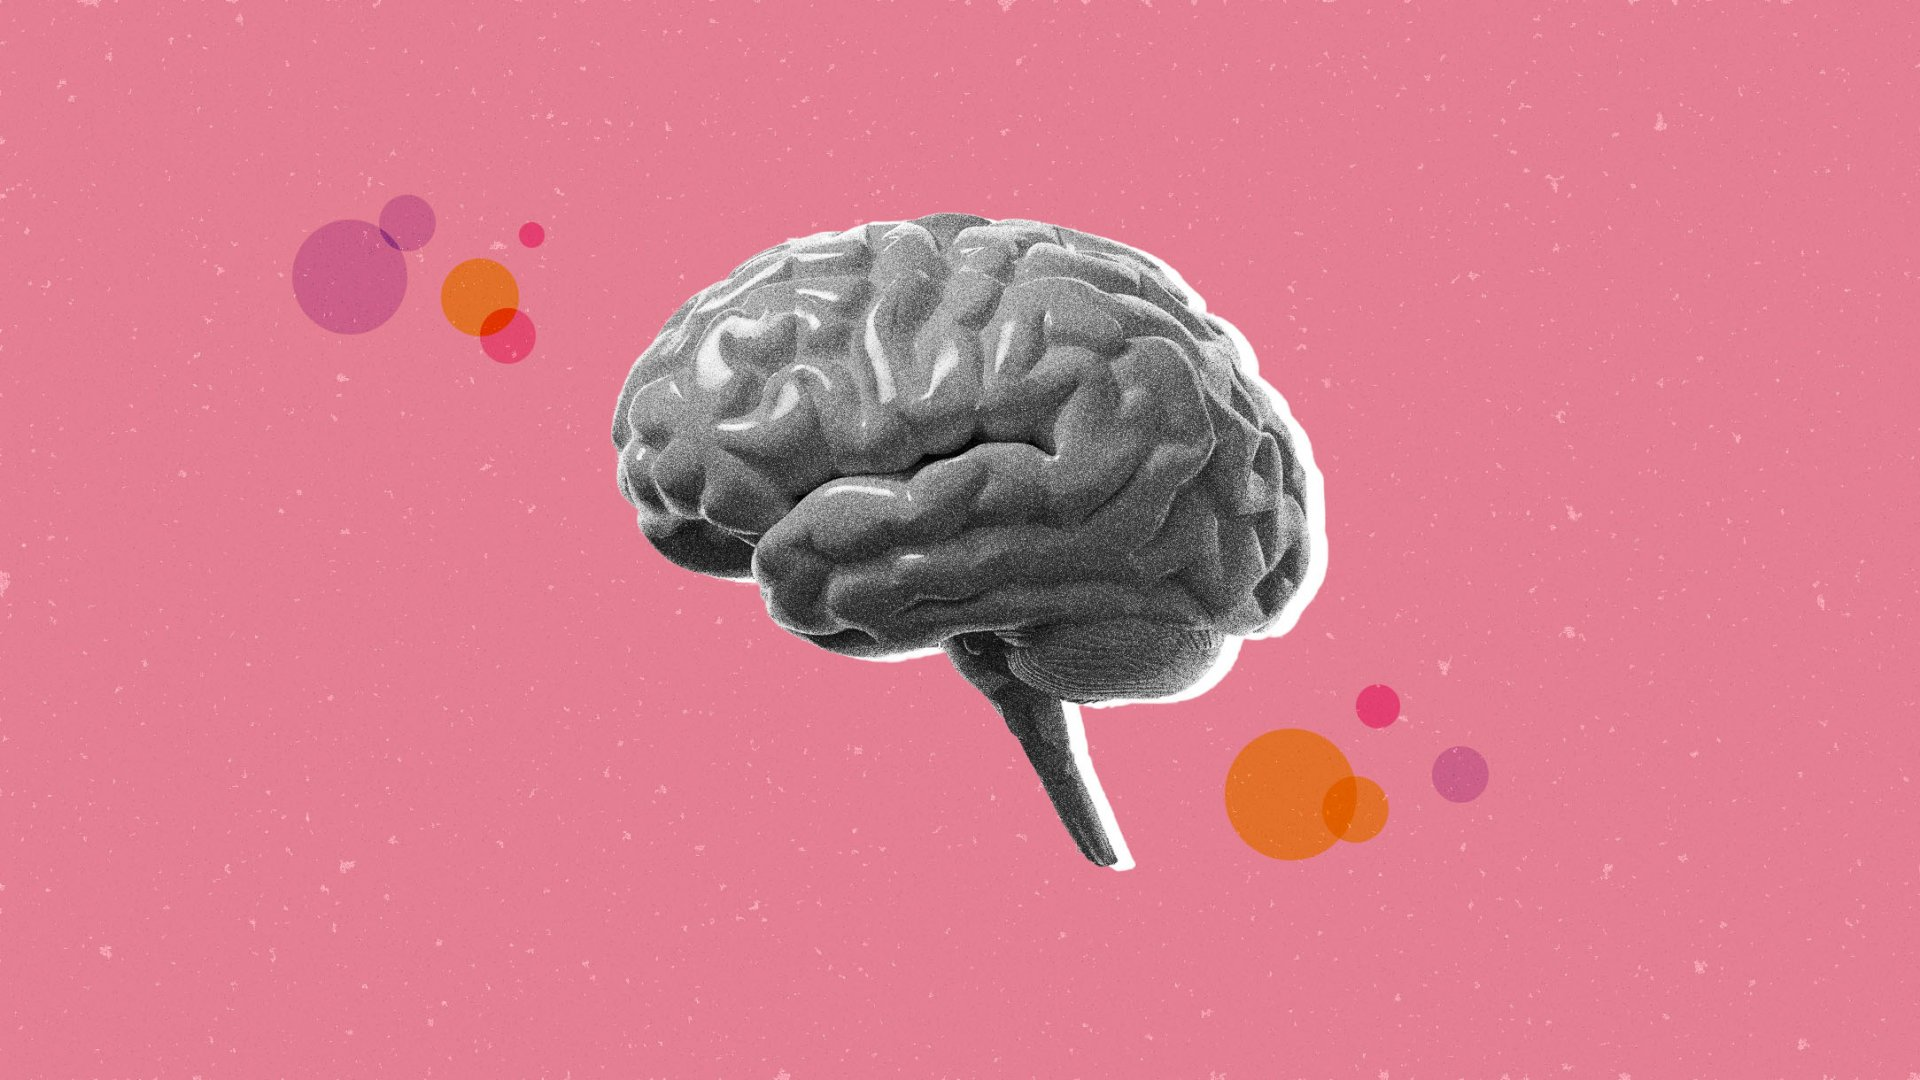 Being Kind to Others Improves Brain Function, Stanford Study Shows